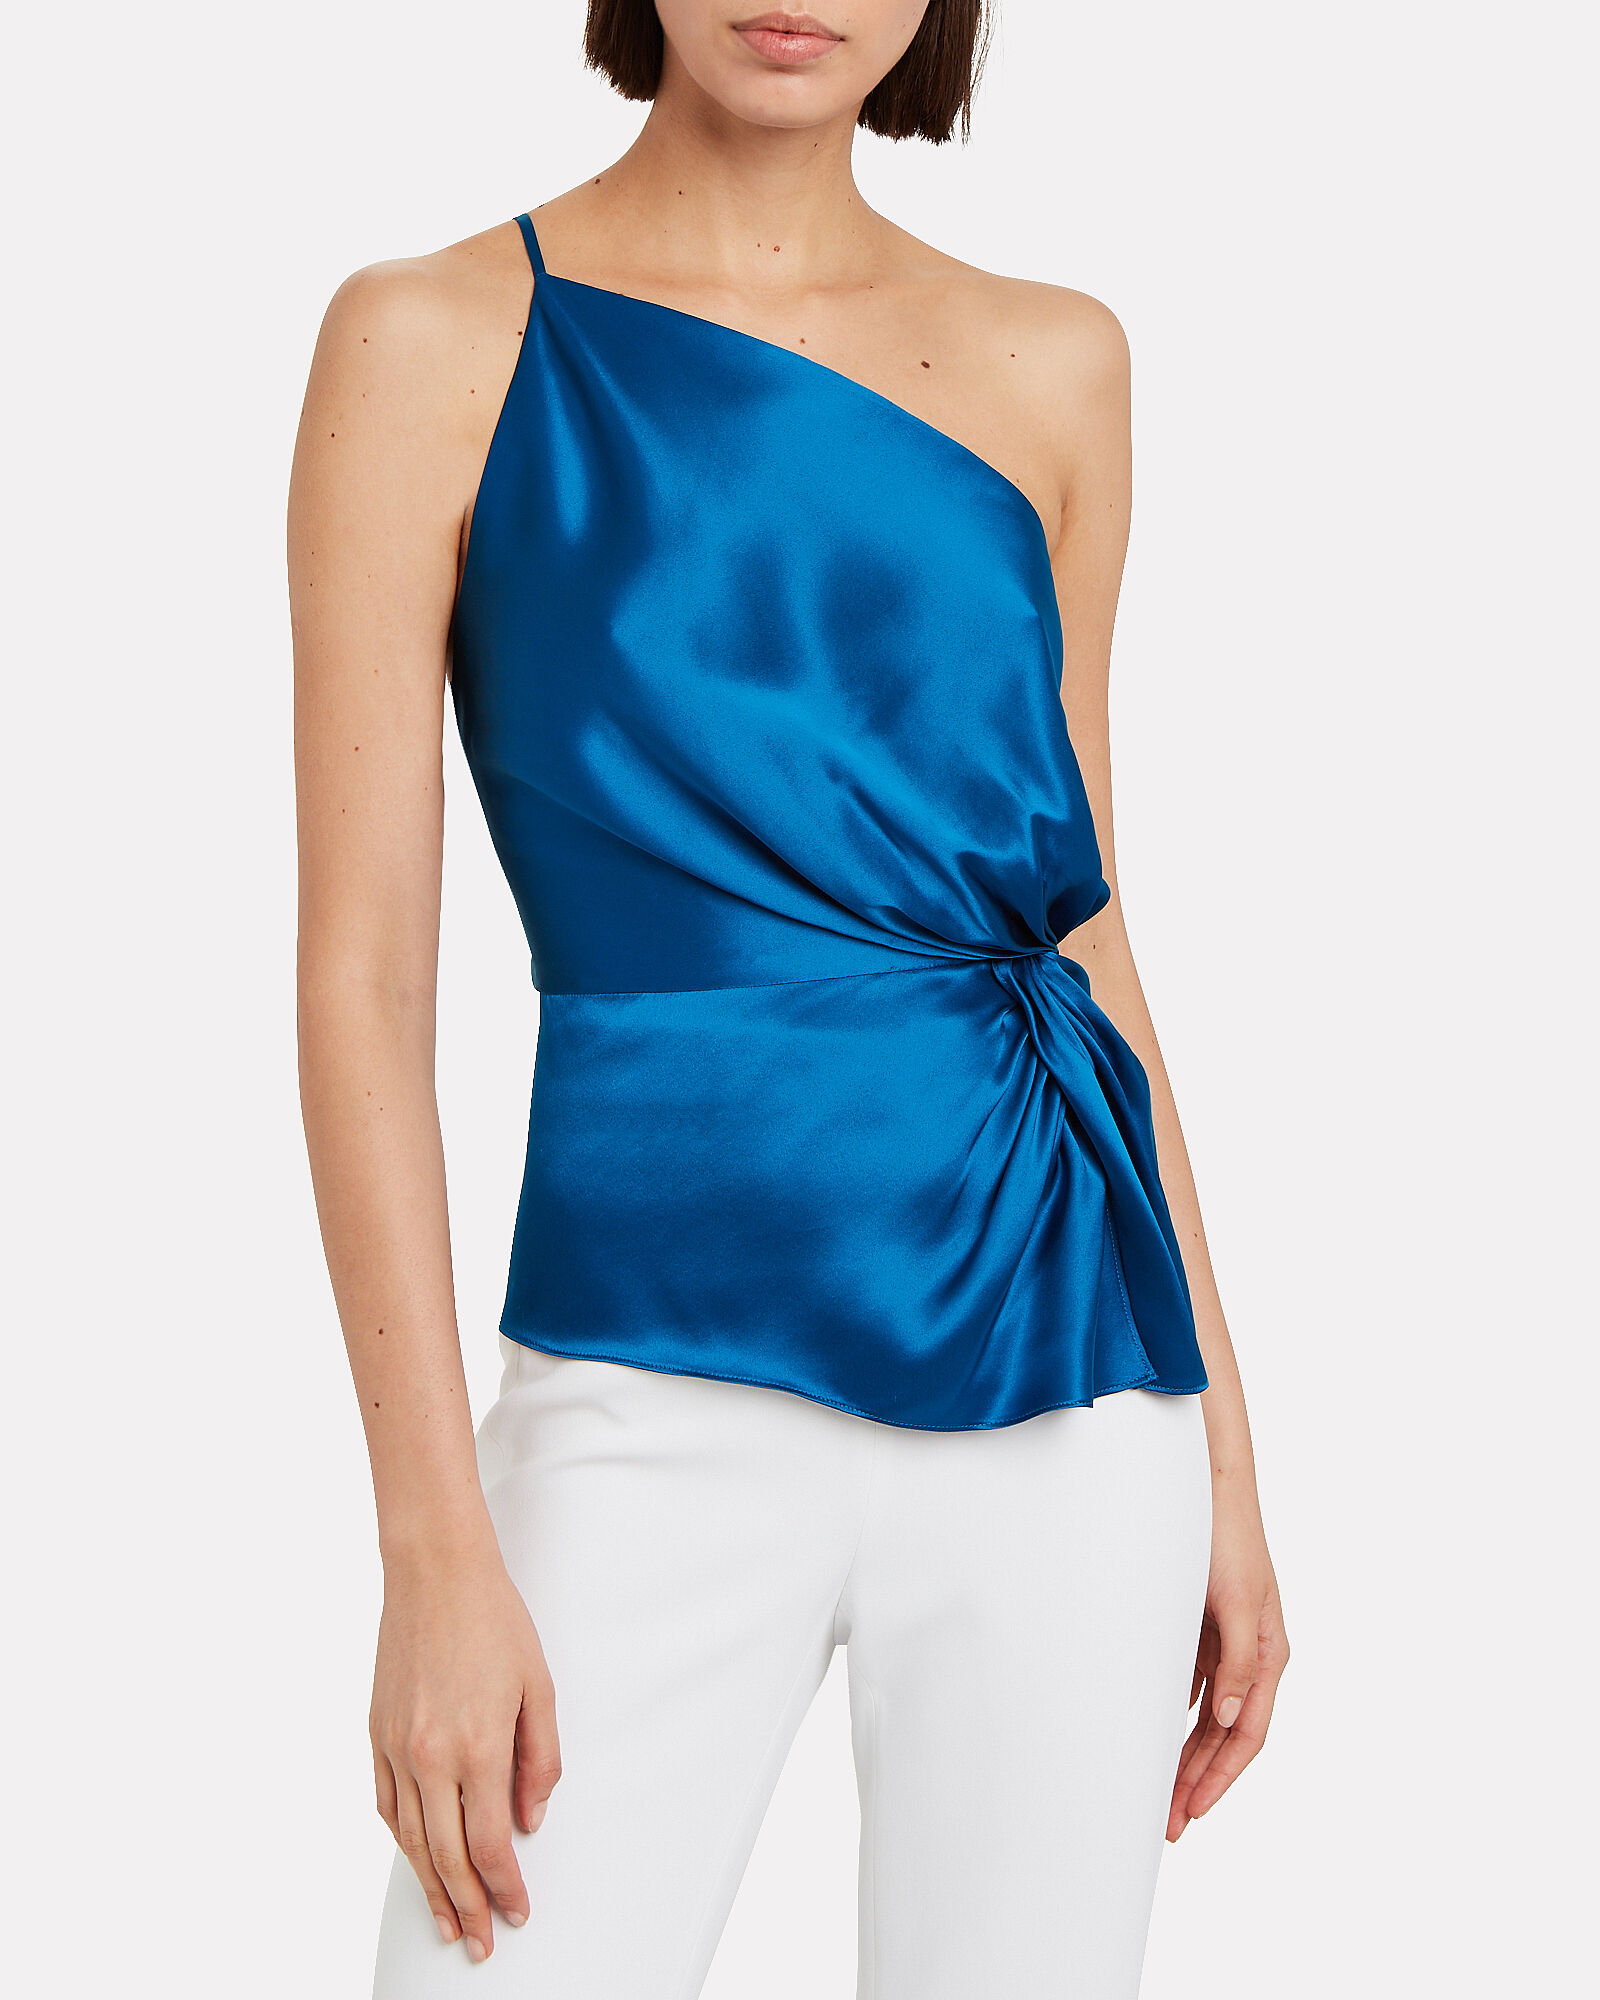 Silk Charmeuse Twisted Top, BLUE-MED, hi-res